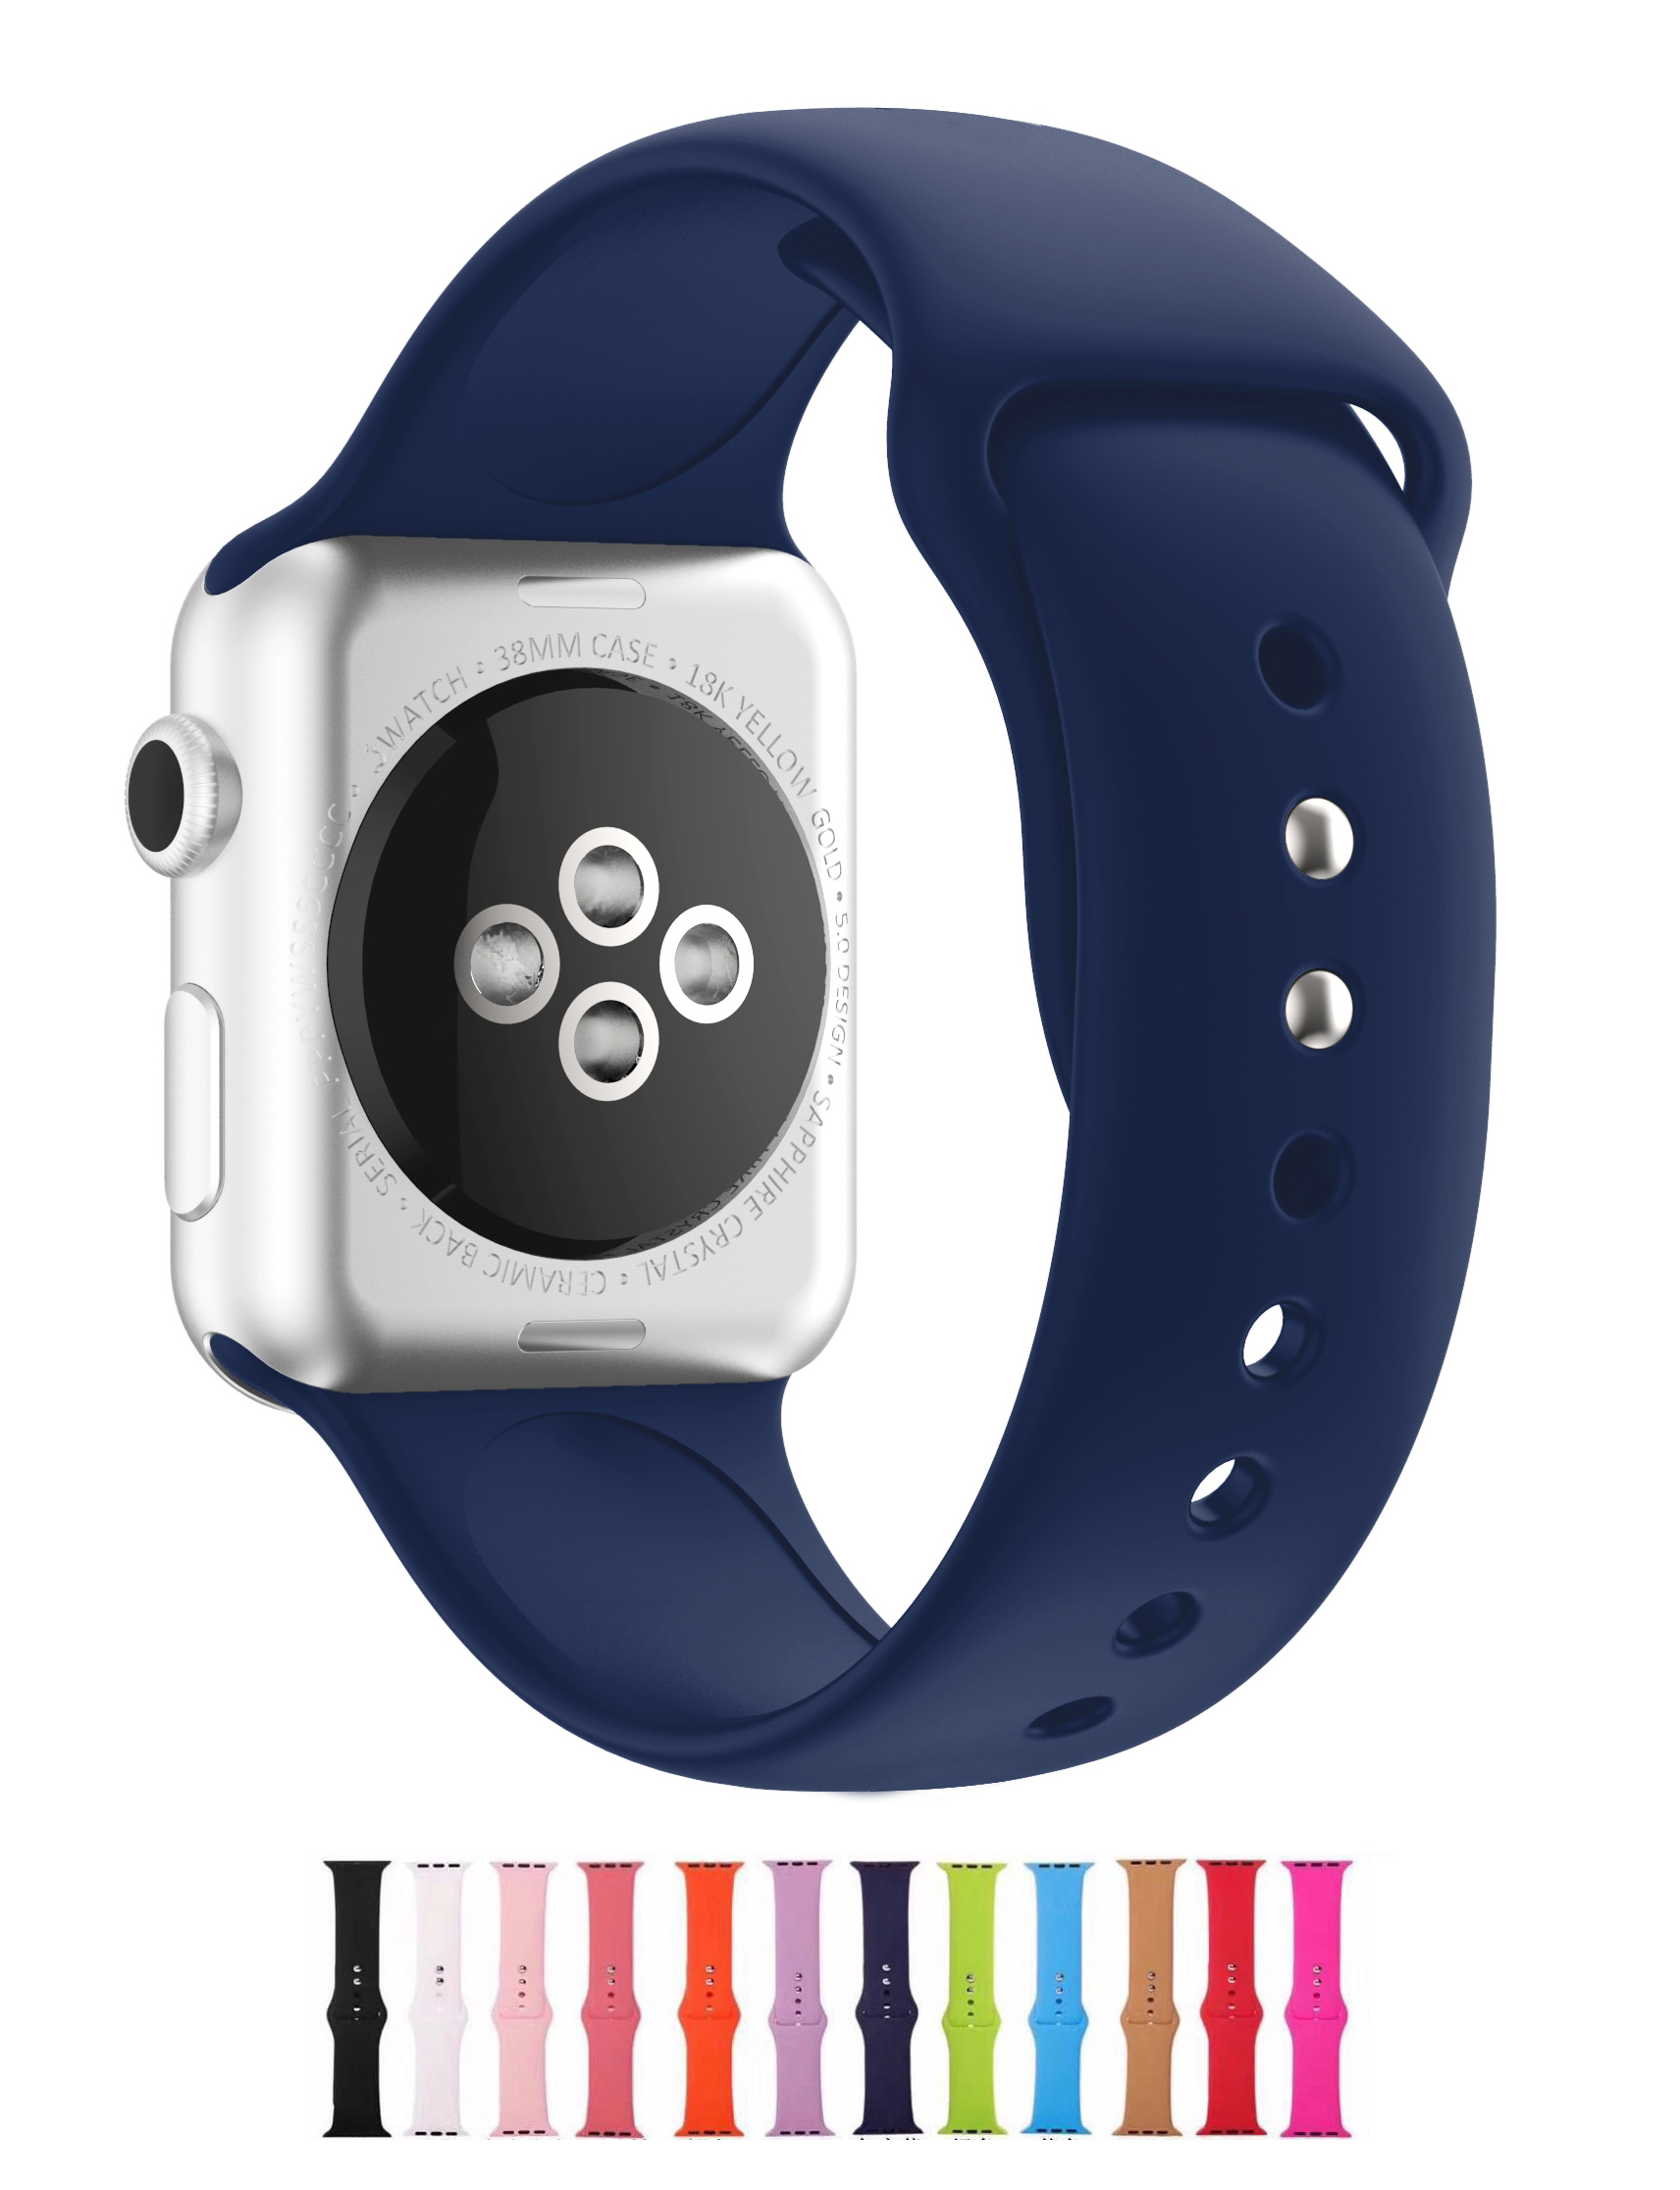 Apple Watch Strap 38mm 40mm 42mm 44mm iWatch Band Series 6 5 4 3 2 1 Soft Silicone Candy Color Watchband